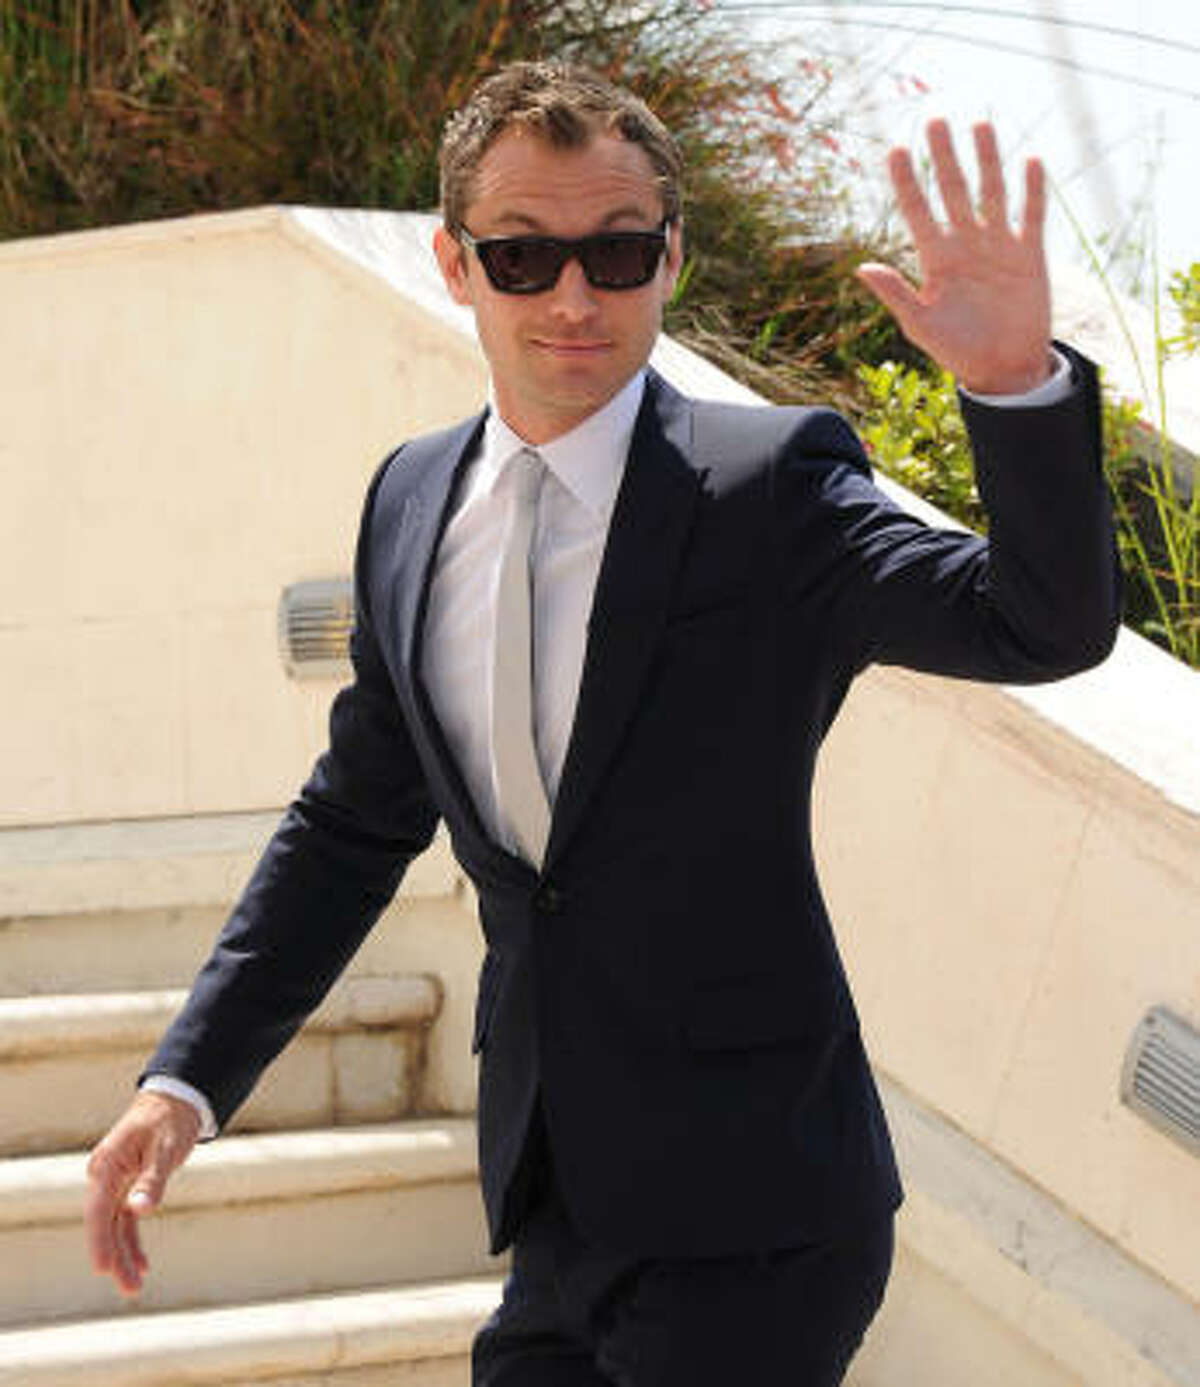 Jury Member Jude Law attends the Jury Photocall at the Palais des Festivals during the 64th Cannes Film Festival on May 11, 2011 in Cannes, France.